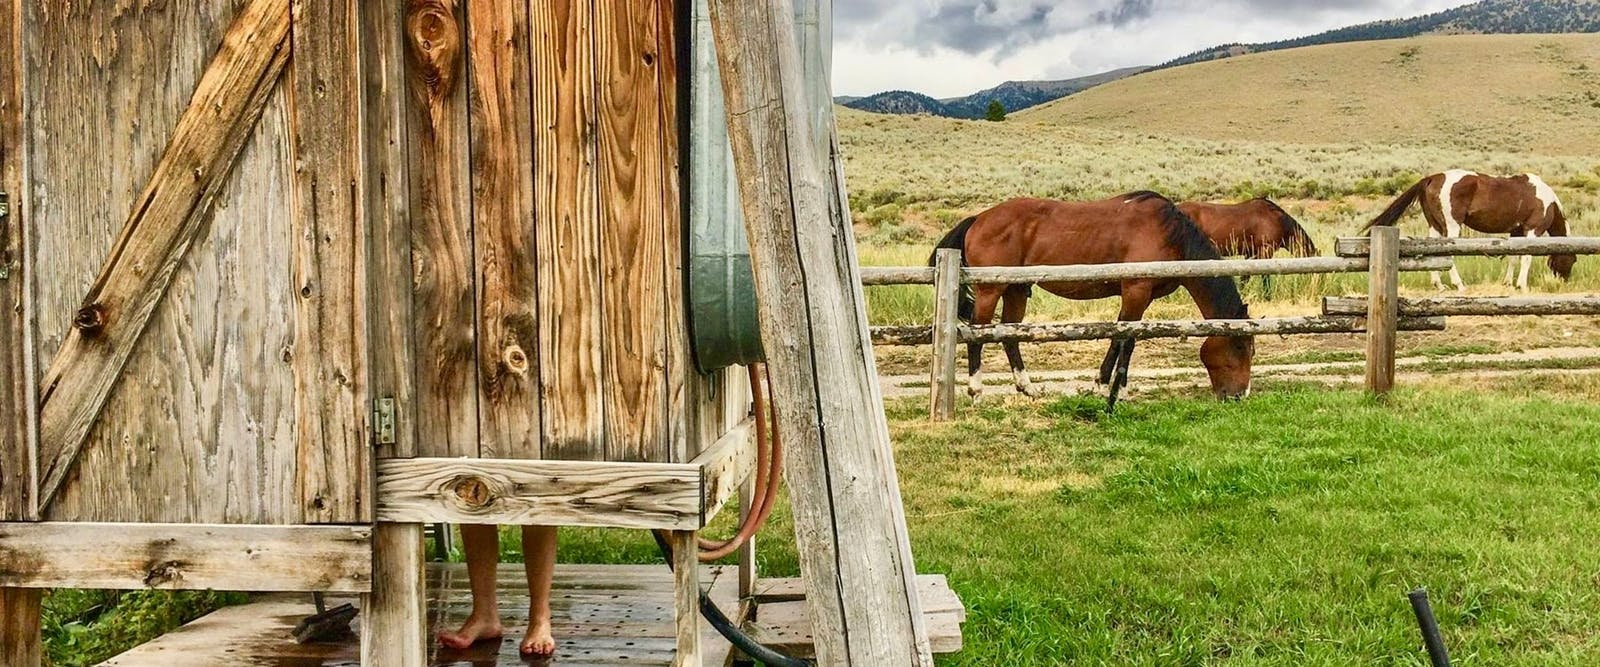 The Shower House at Medicine Lodge Horse Drives at Silver Spur Ranch